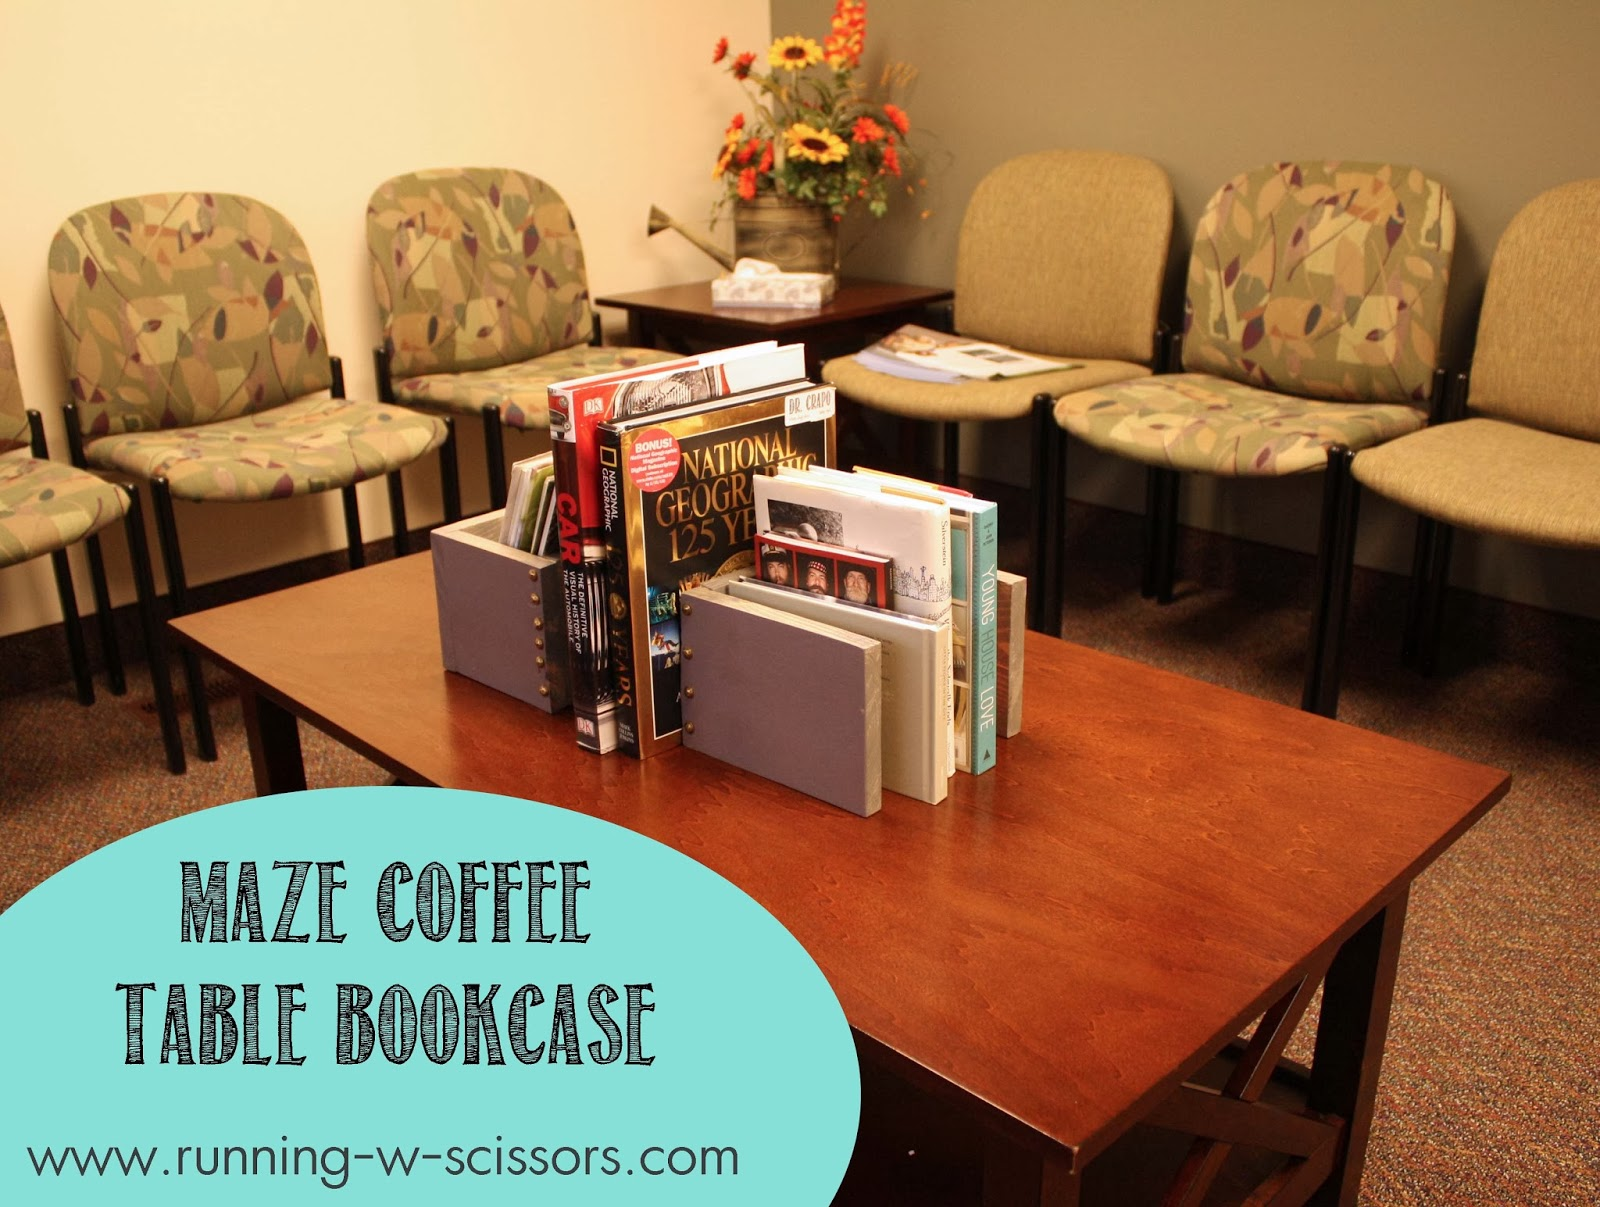 running with scissors: maze bookcase for a coffee table